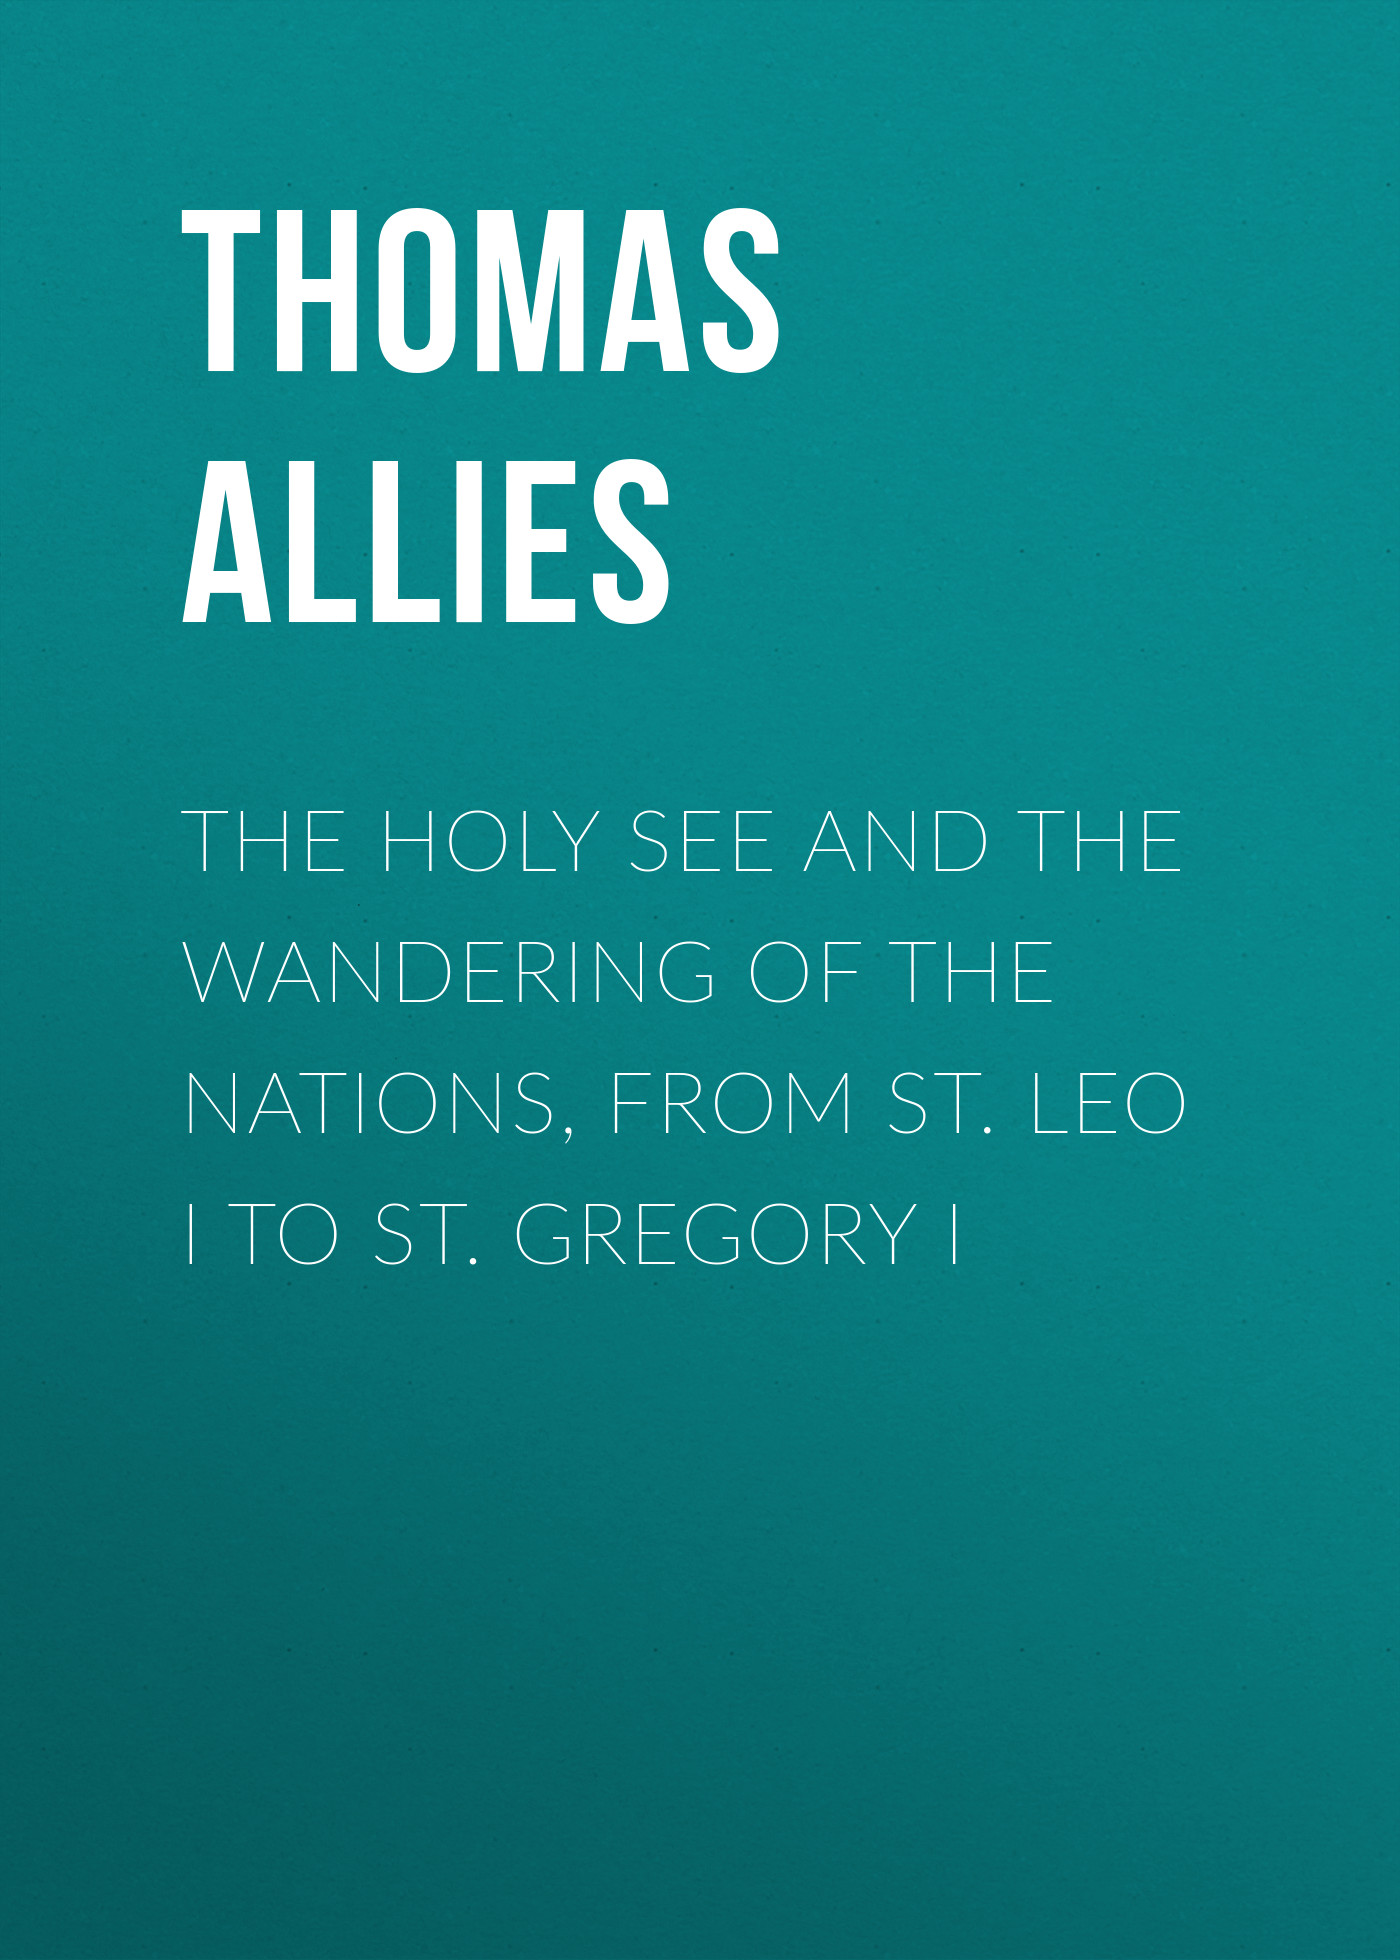 Allies Thomas William The Holy See and the Wandering of the Nations, from St. Leo I to St. Gregory I allies thomas william the church of england cleared from the charge of schism